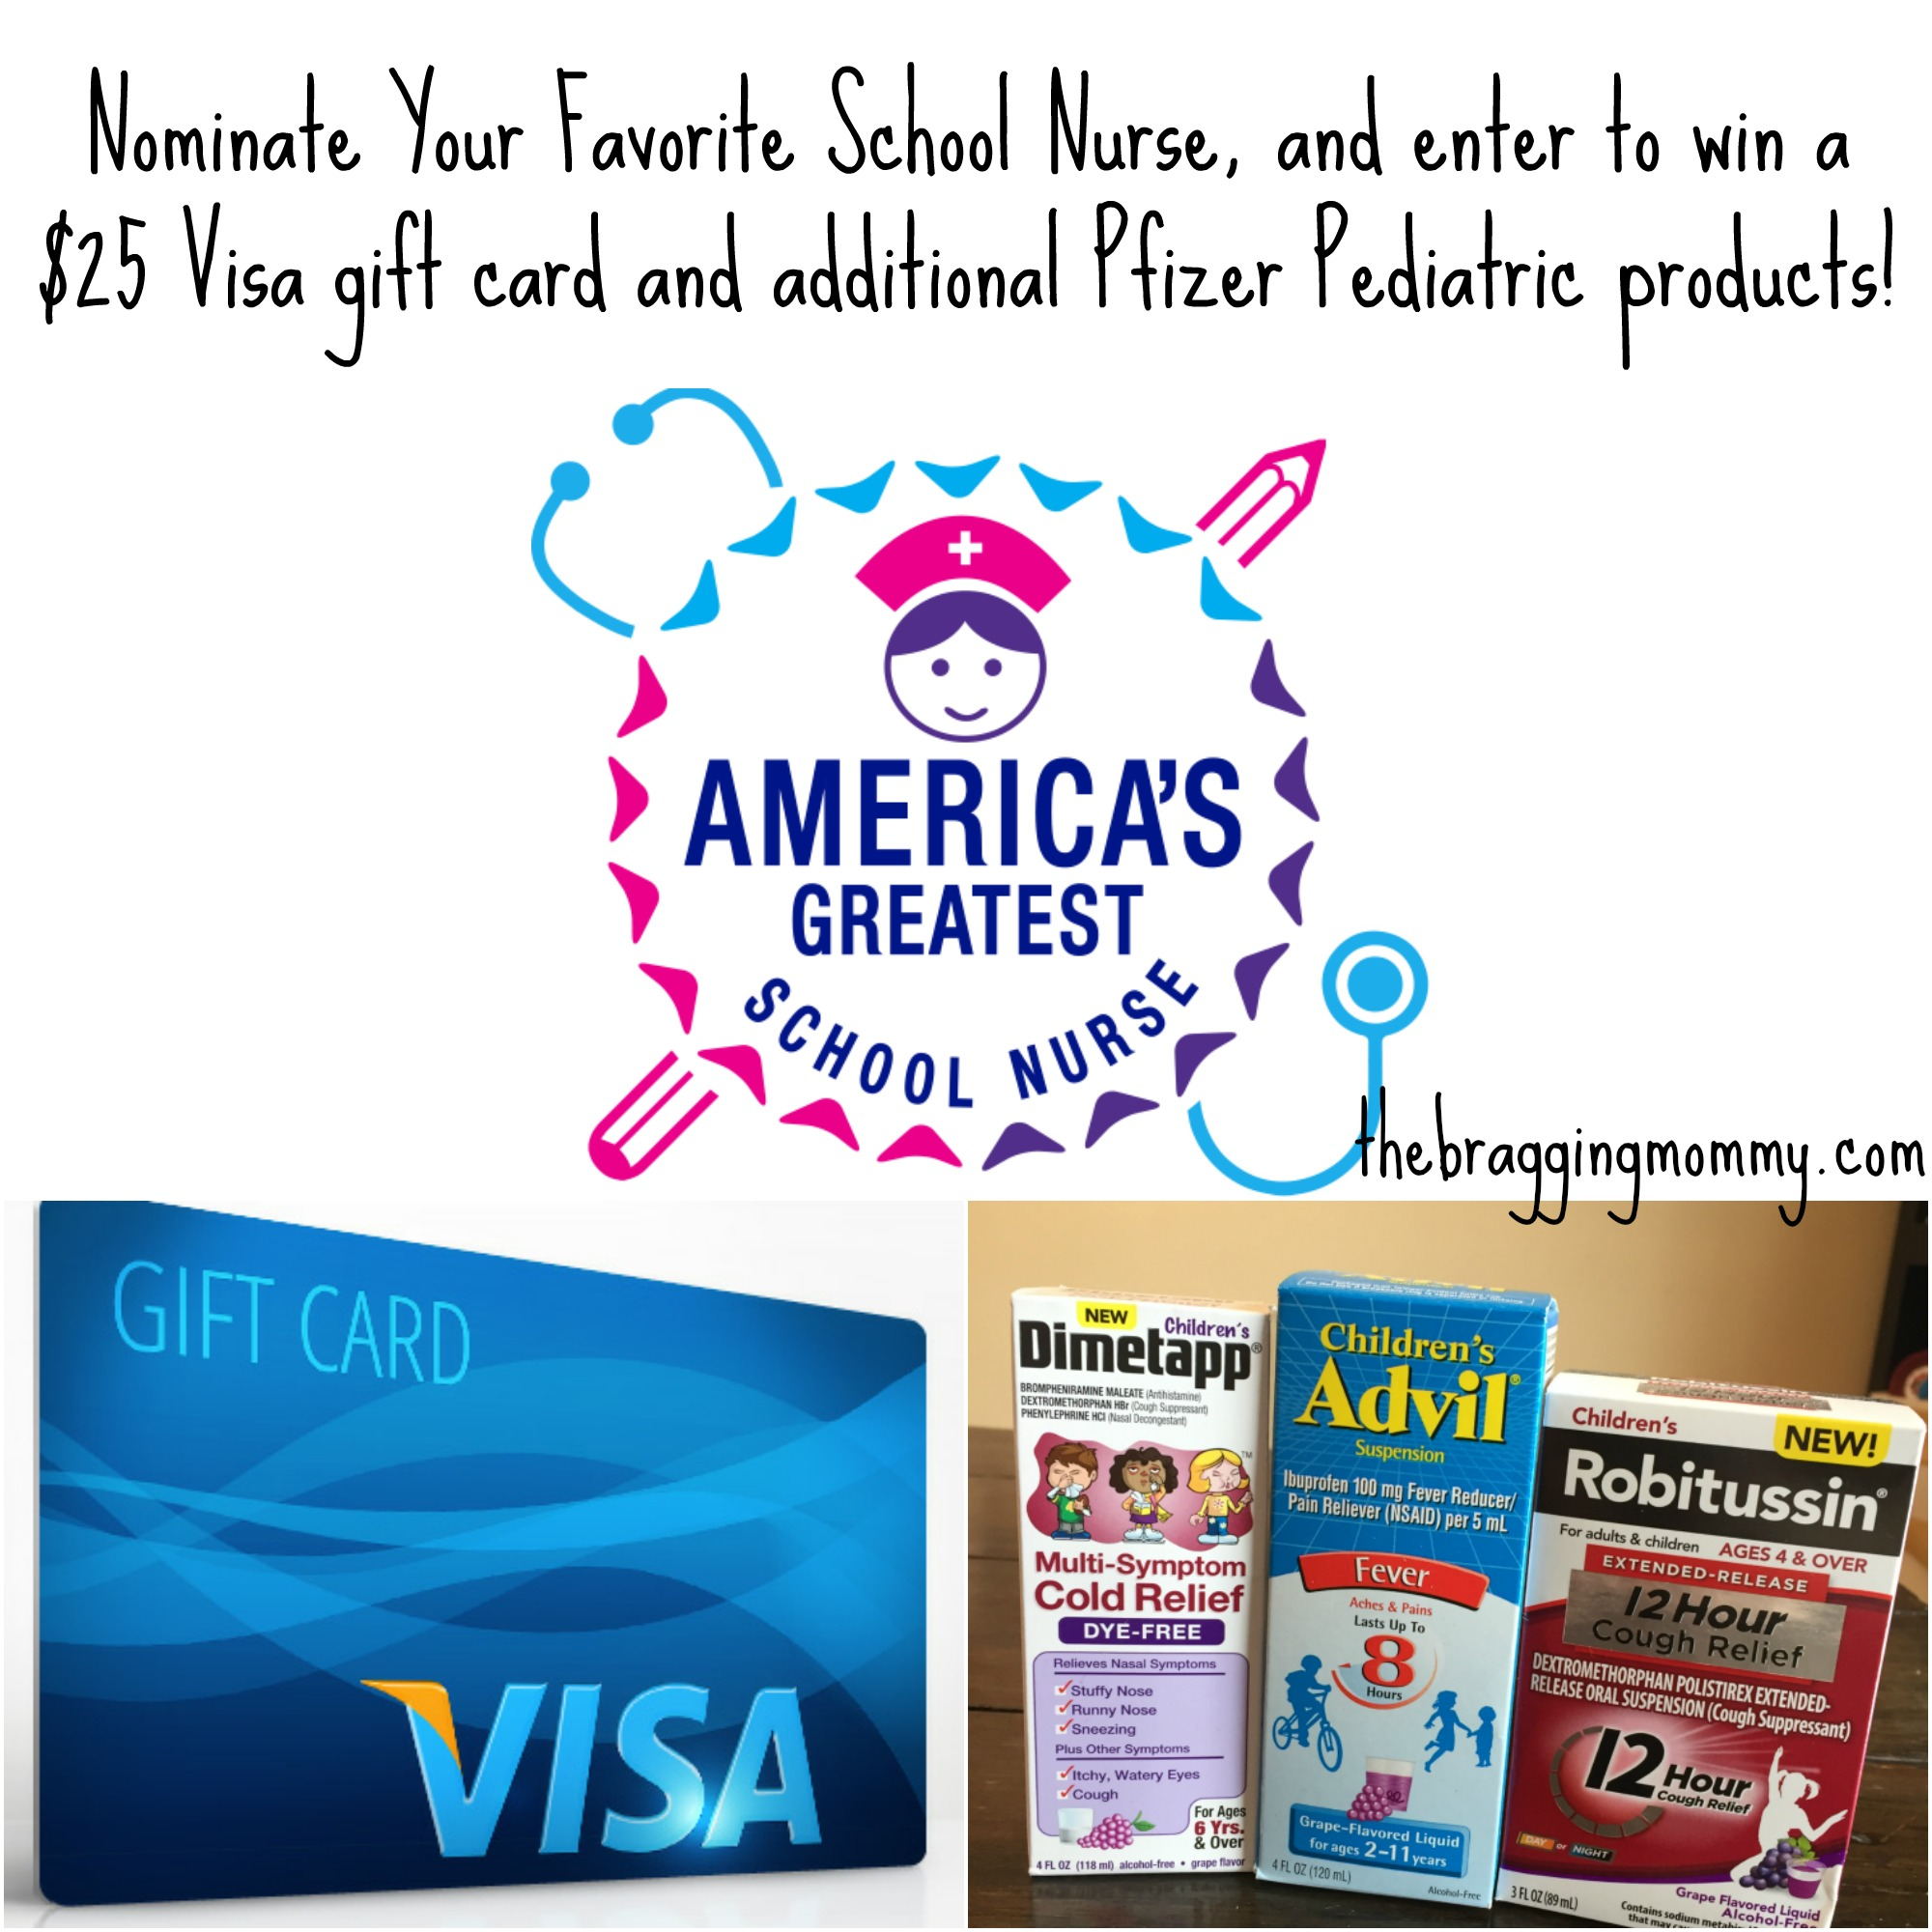 Americas greatest school nurse contest and pfizer pediatrics to help celebrate nurses pfizer pediatrics is generously giving away a 25 visa gift card and additional pfizer pediatric products 1 childrens advil kristyandbryce Image collections